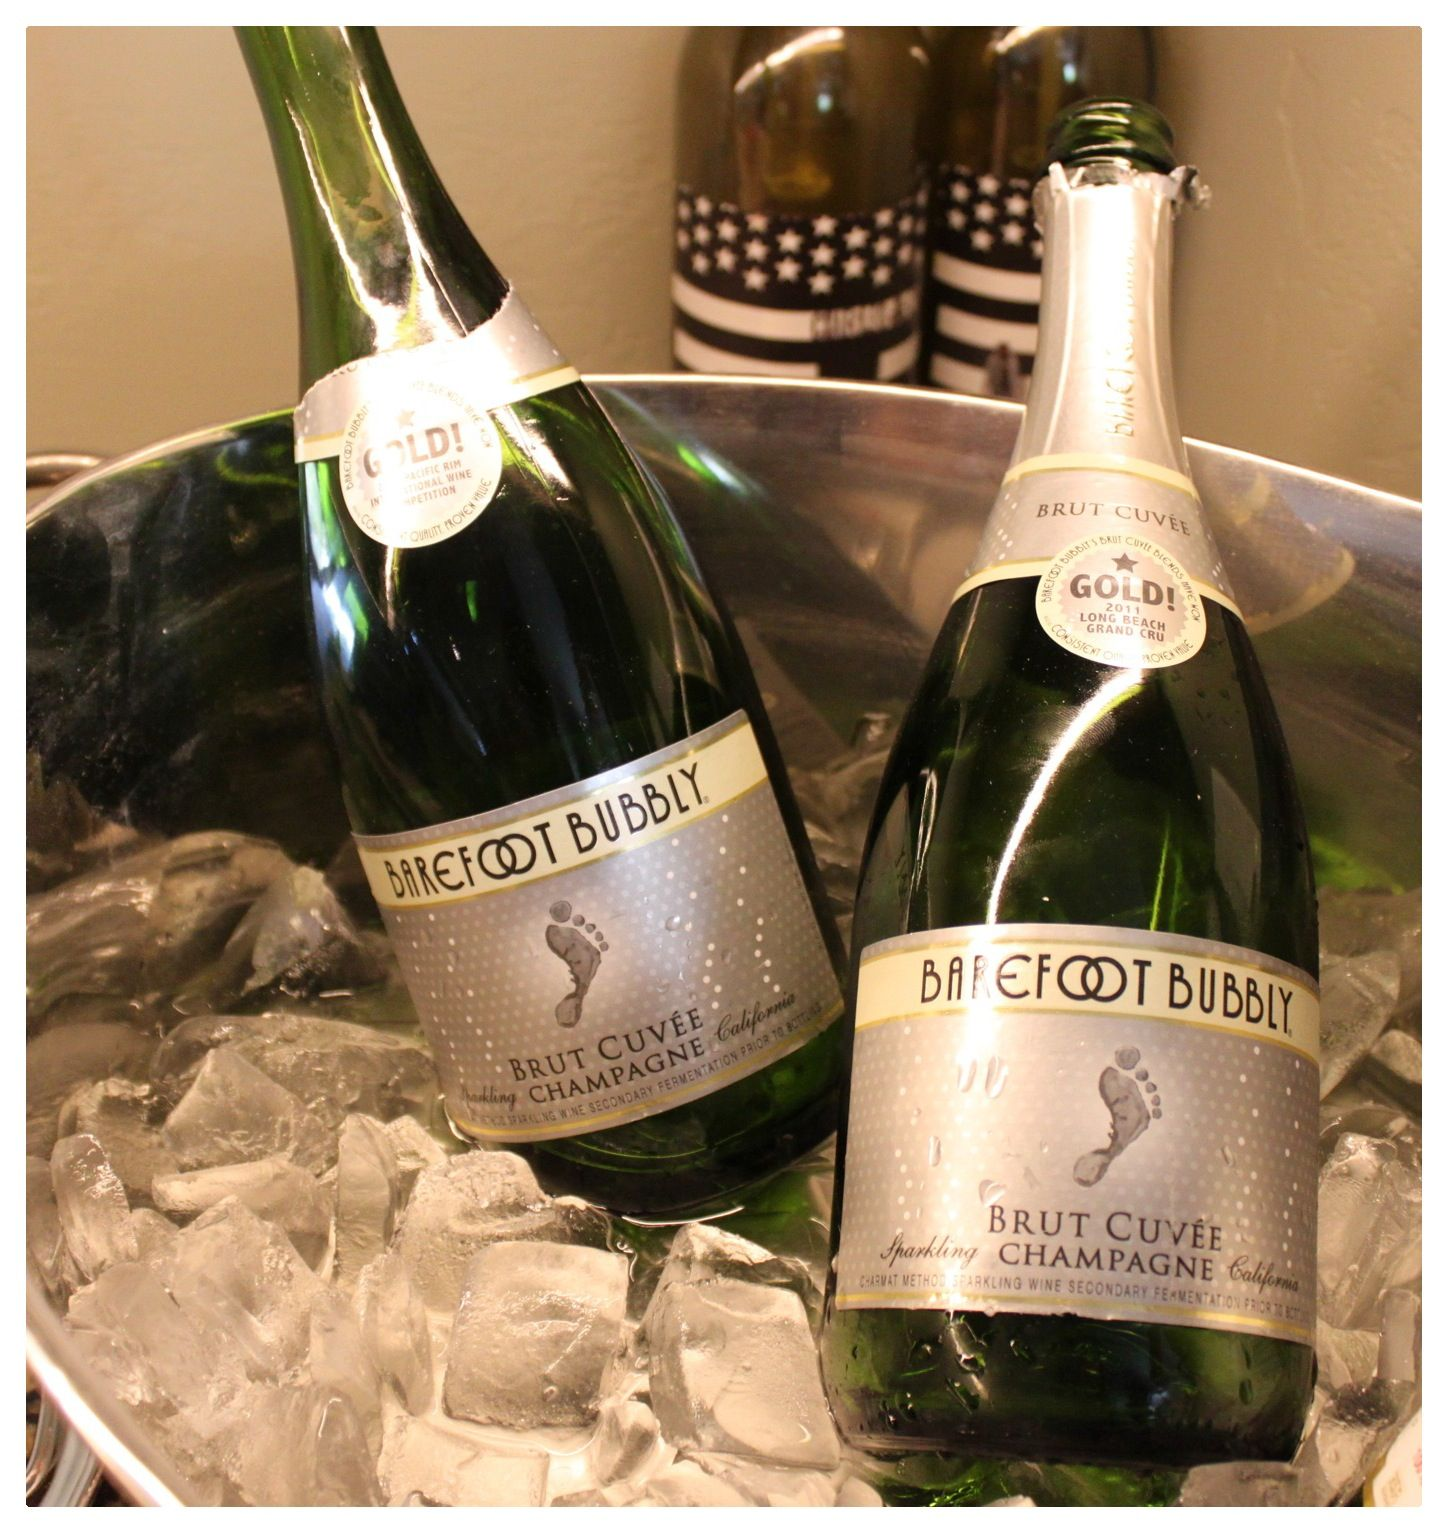 Barefoot Bubbly Champagne - Footprint Label Makes